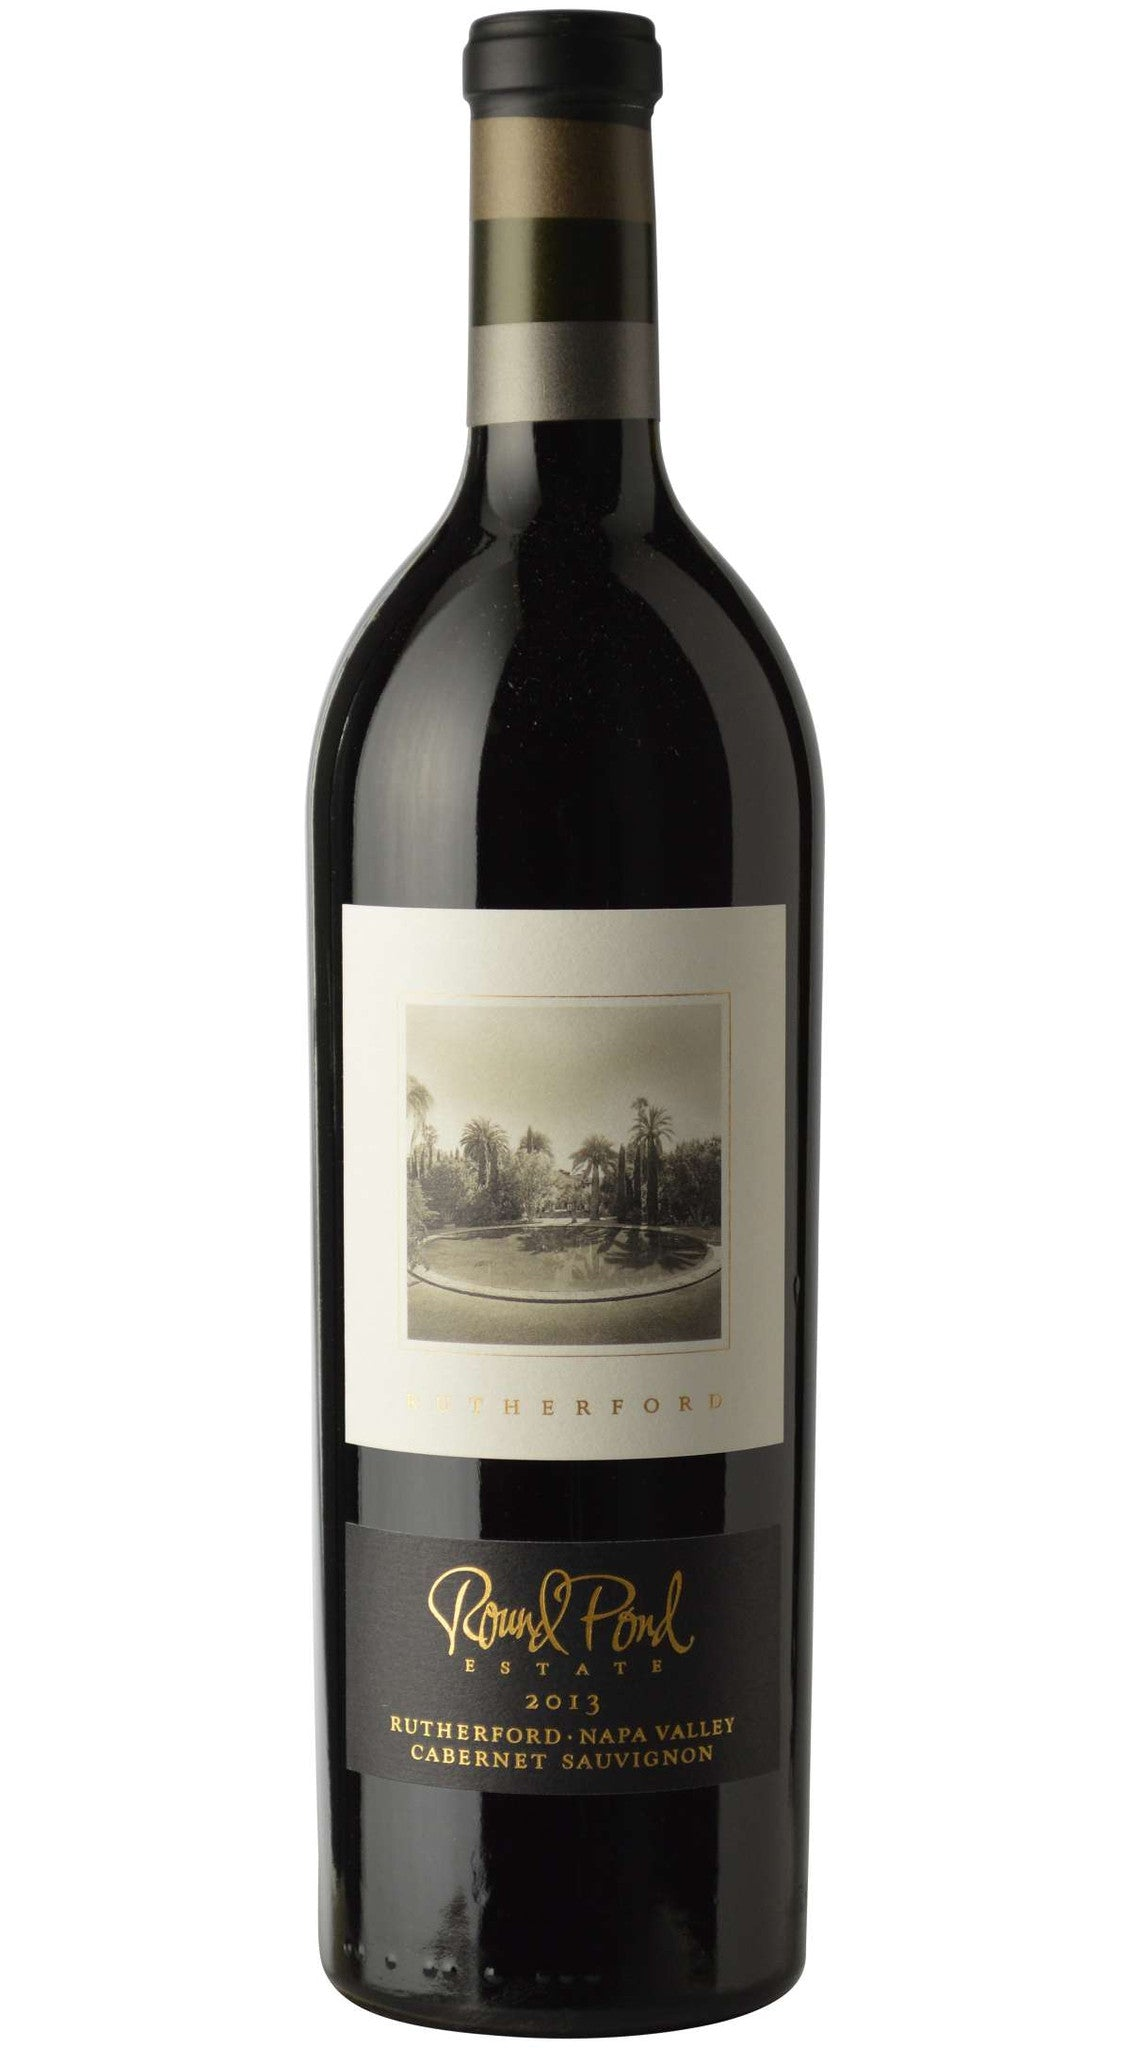 Round Pond Rutherford Cabernet Sauvignon